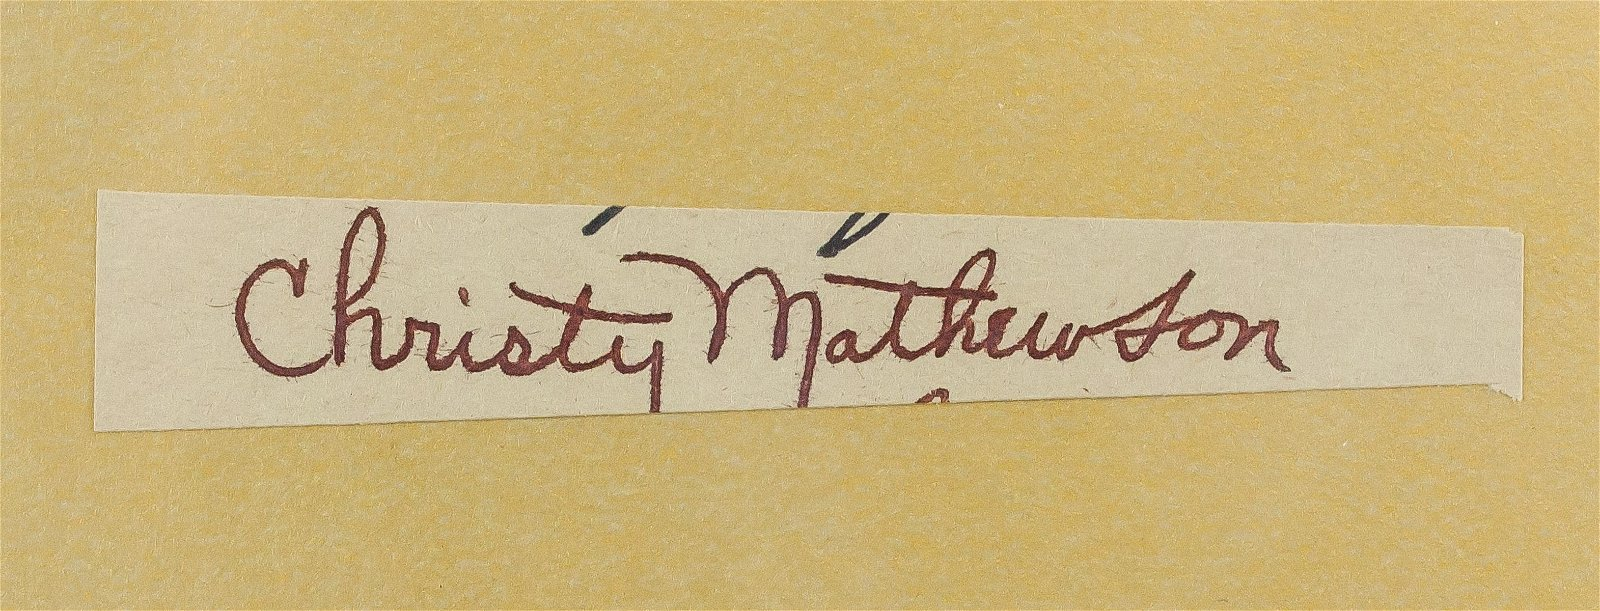 GSA Certified Christy Mathewson Cut Signature